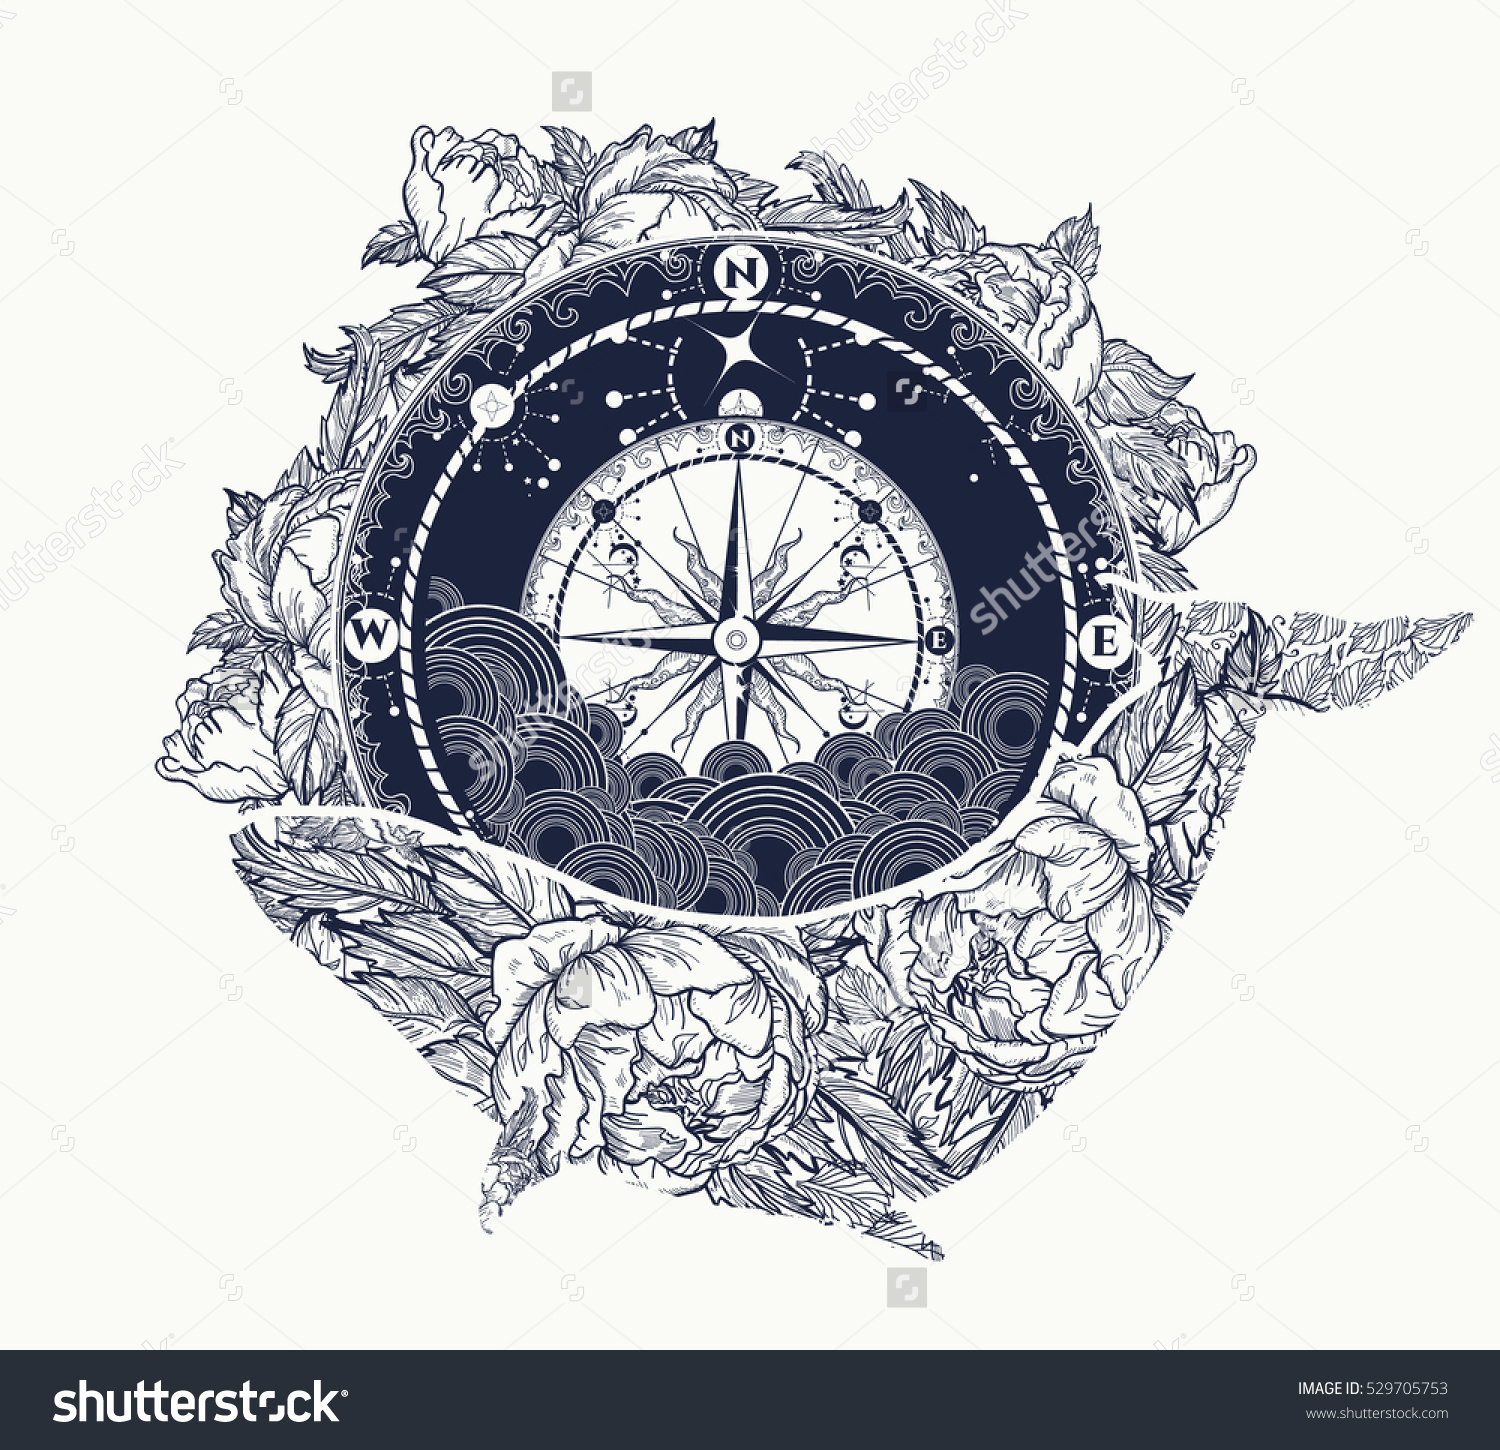 1500x1450 Antique Compass And Floral Whale Tattoo Art. Mystical Symbol